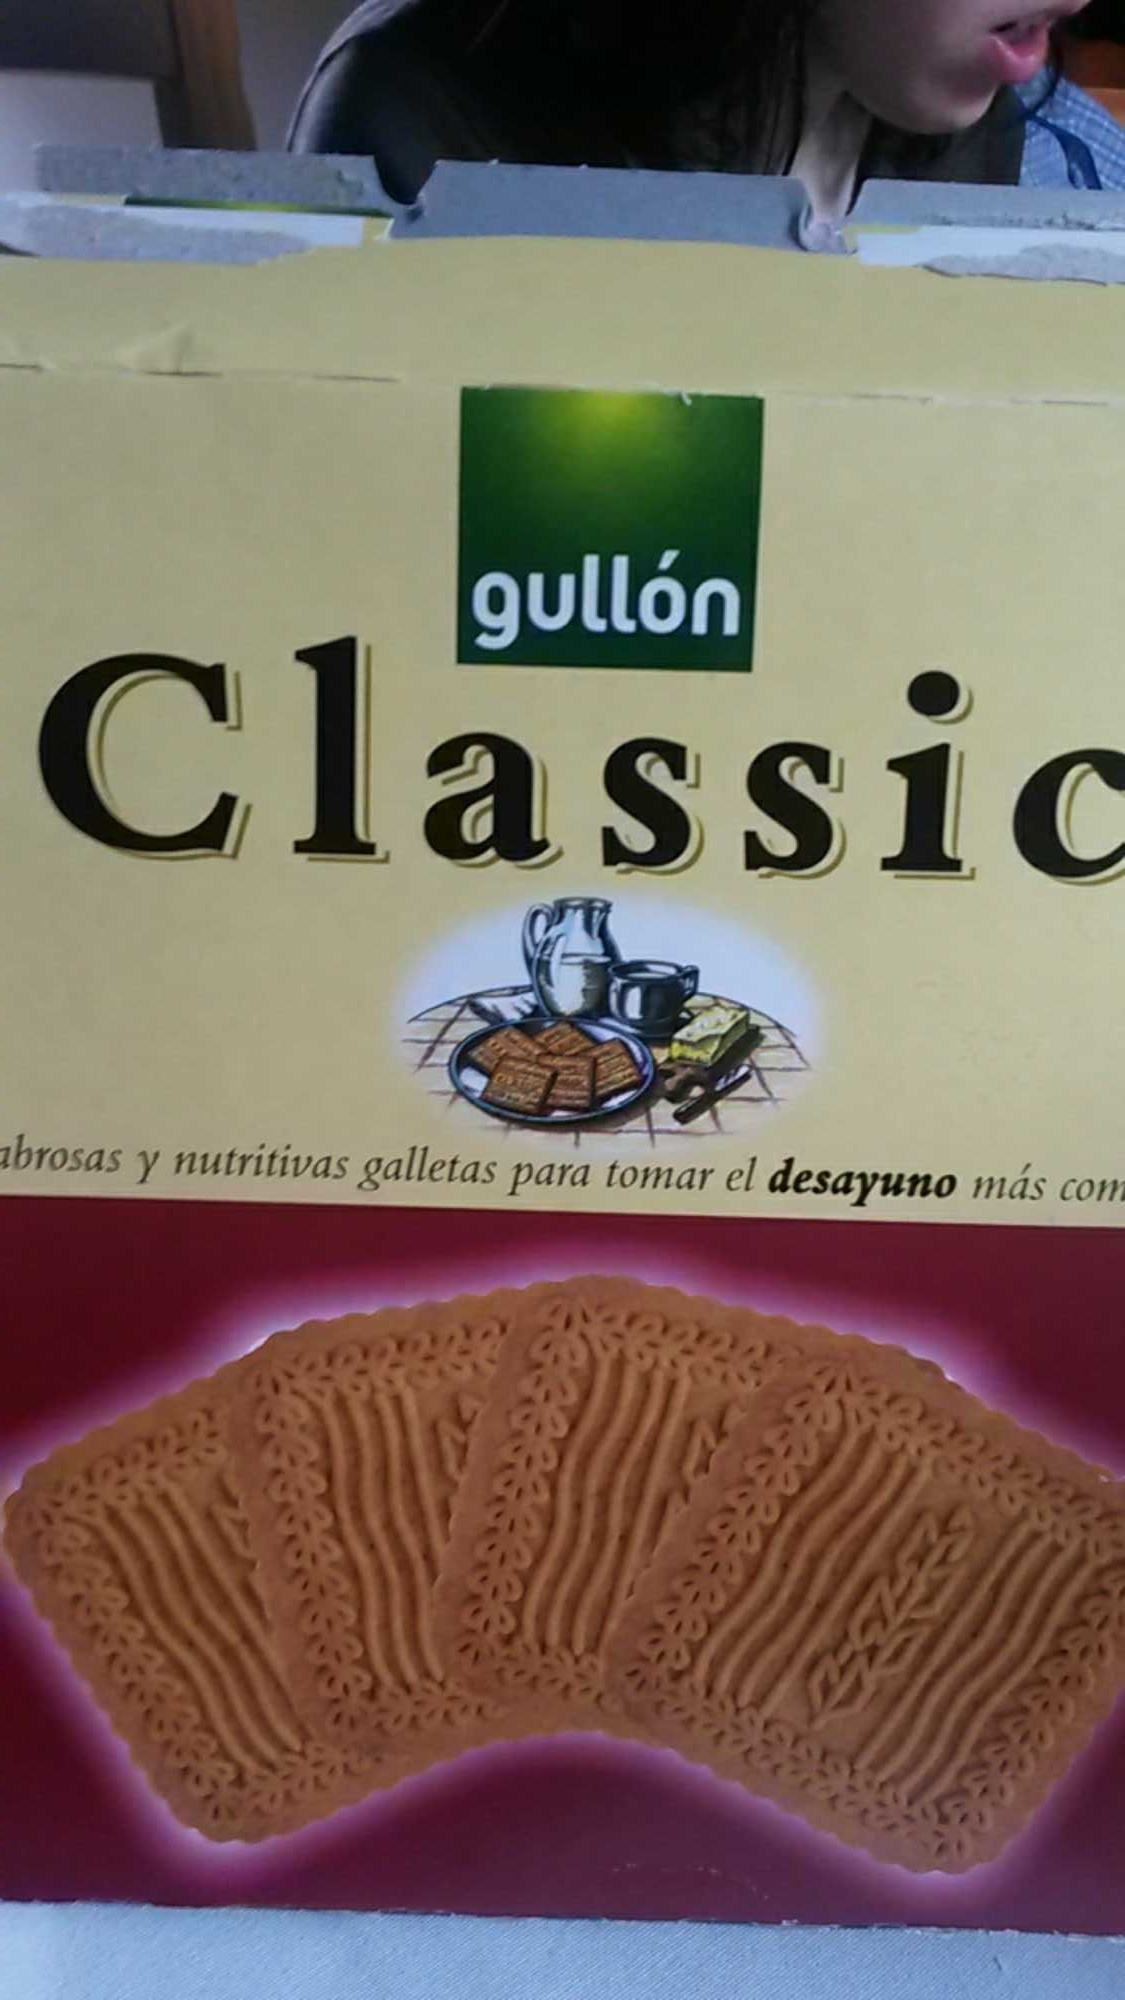 Classic - Producto